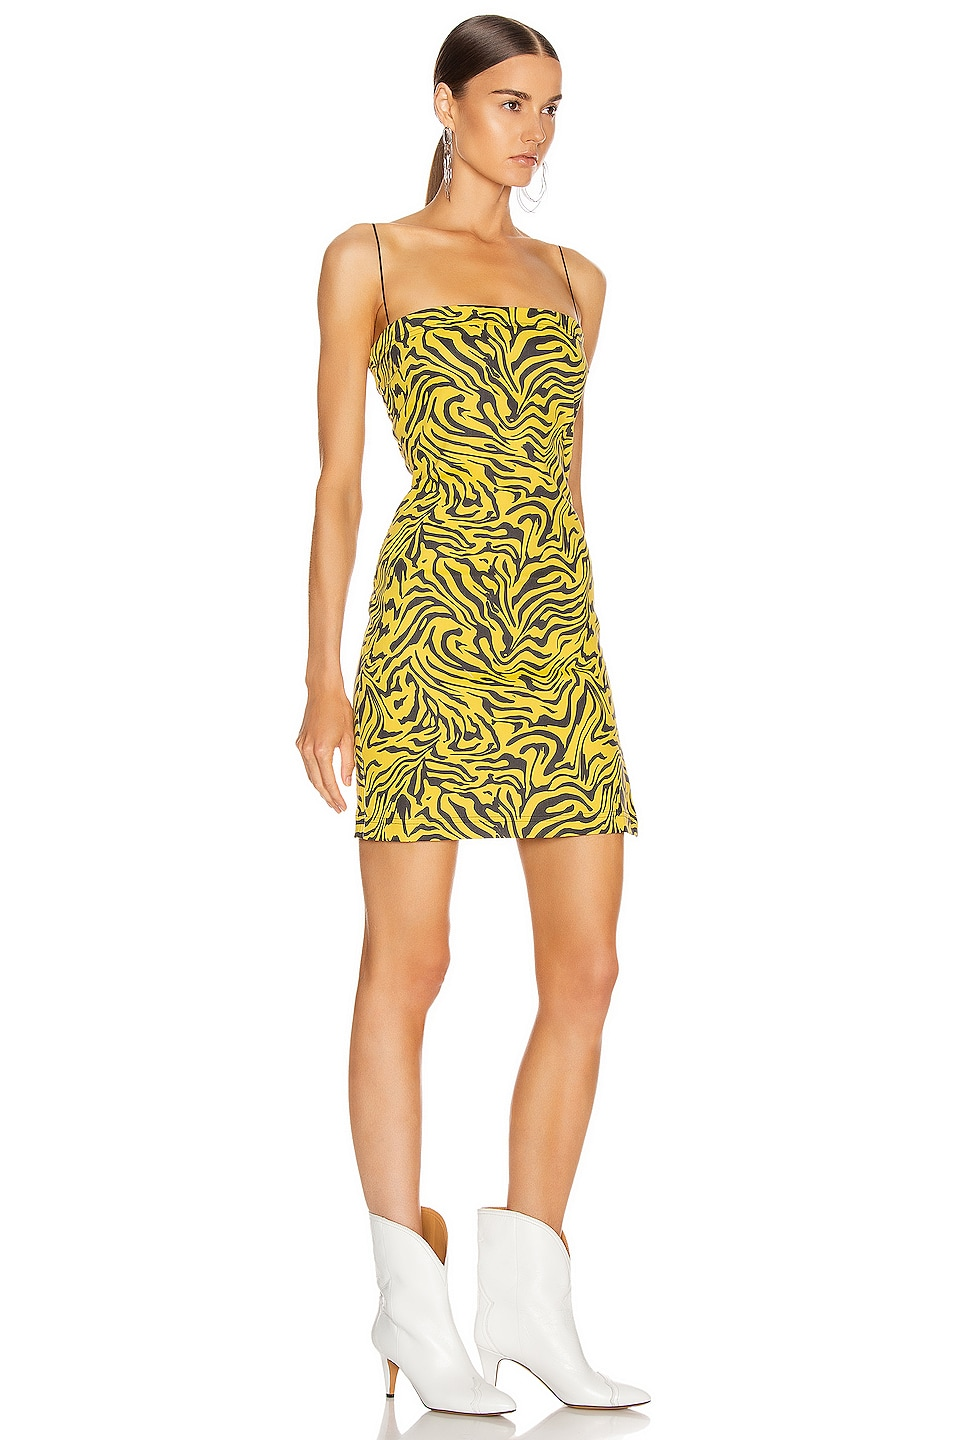 Image 2 of Miaou Lotte Dress in Yellow Zebra Print